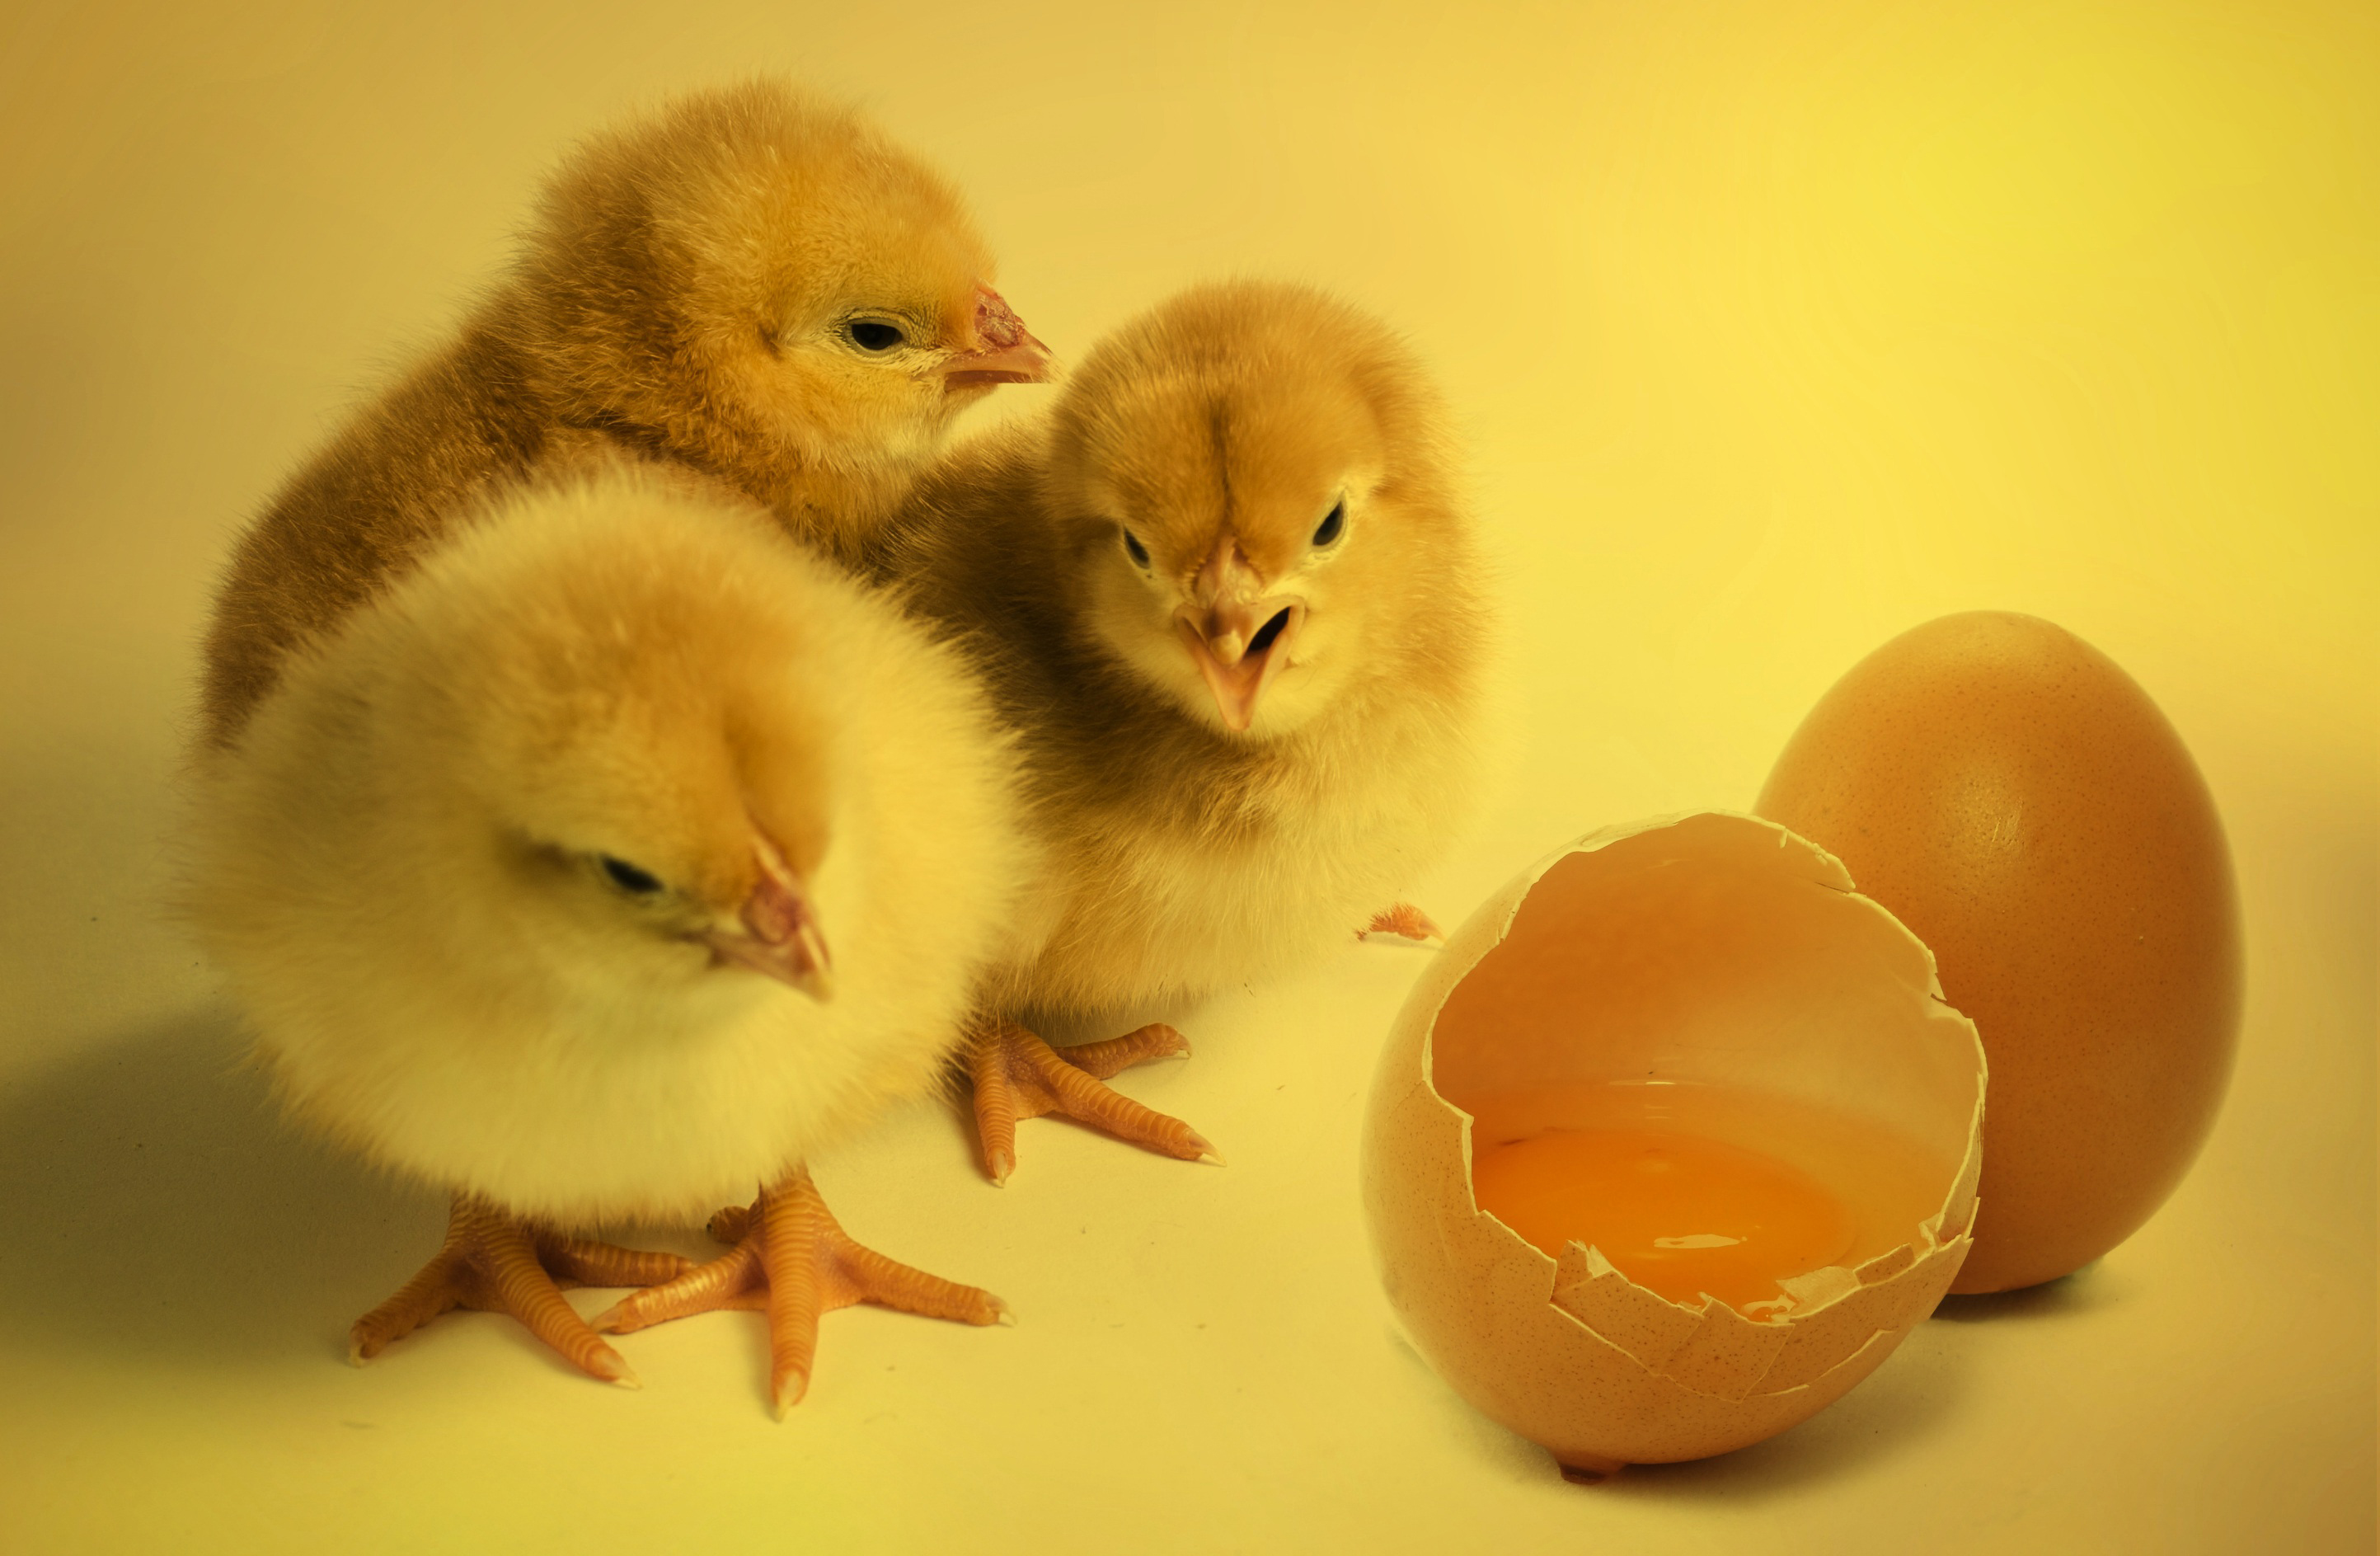 Chicks,nice,yellow,poultry